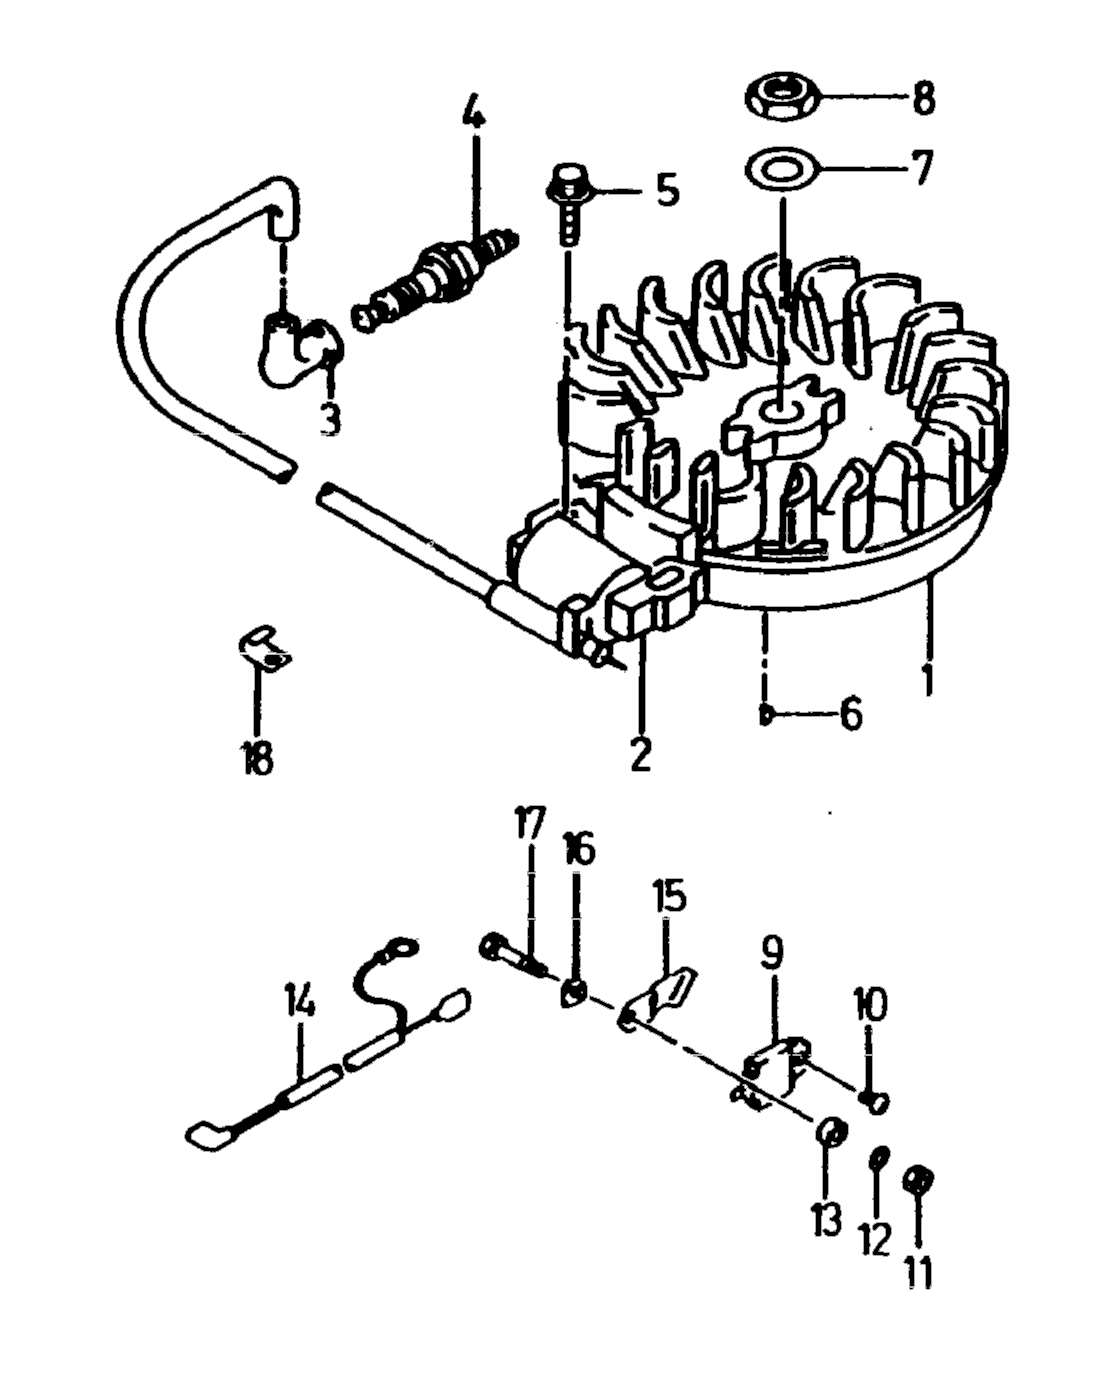 Wood Chipper Engine Diagram moreover Mower also  as well Ez Hauler Wiring Diagram besides T24347780 Need wiring diagram murray ridng mower. on mtd lawn tractor flywheel